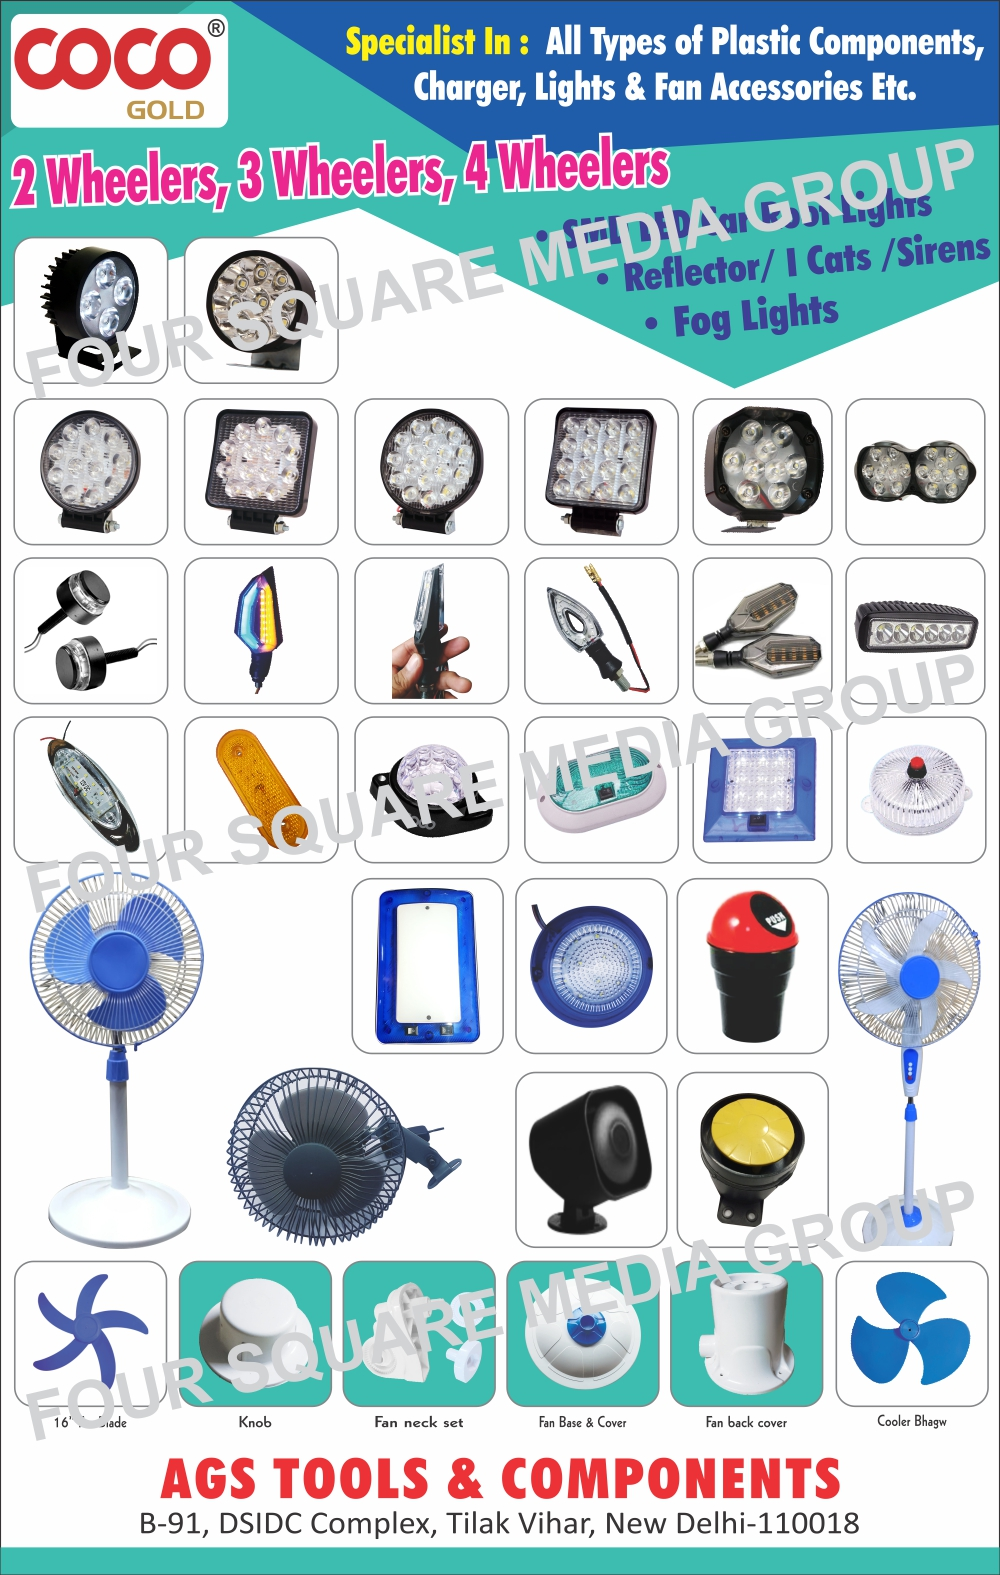 Auto Led Roof Lights, AC Charger Cabinets, Multi Charger Cabinets, USB AC Charger Cabinets, Car Charger Cabinets, DC Charger Cabinets, Plastic Components,